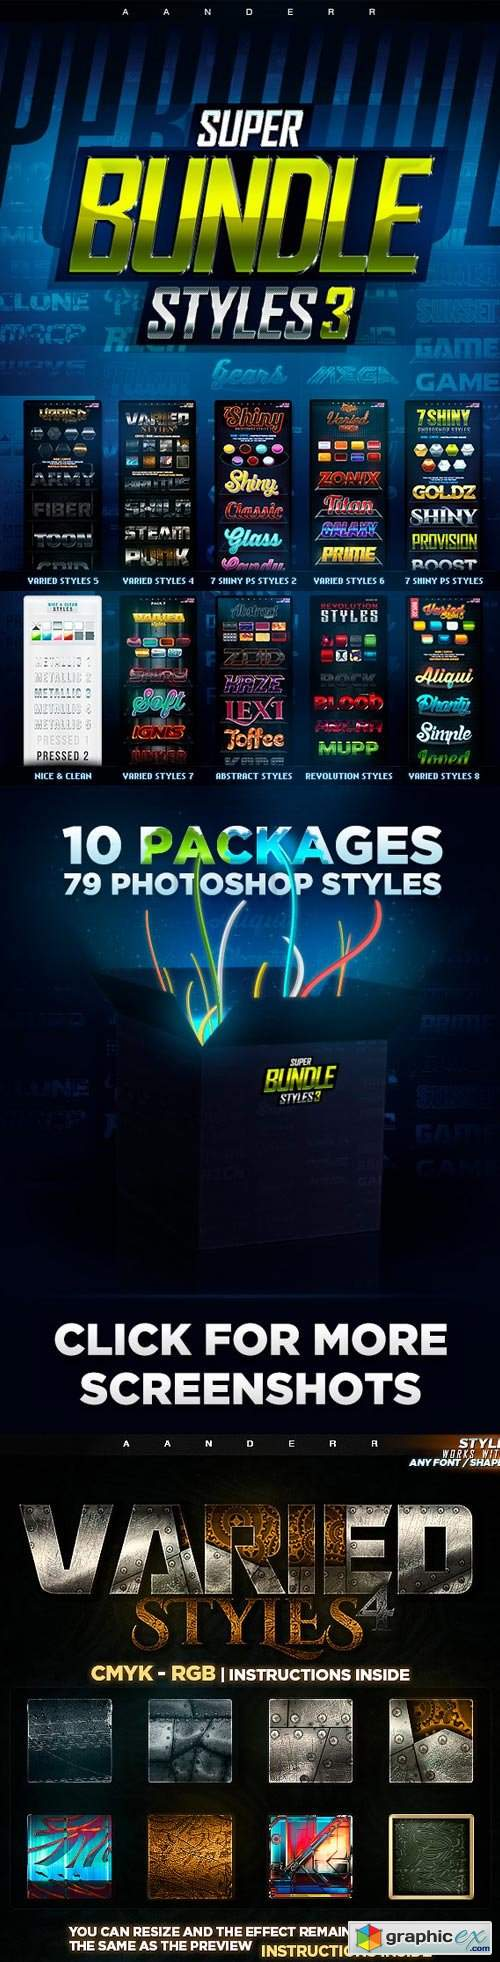 Super Bundle Styles 3